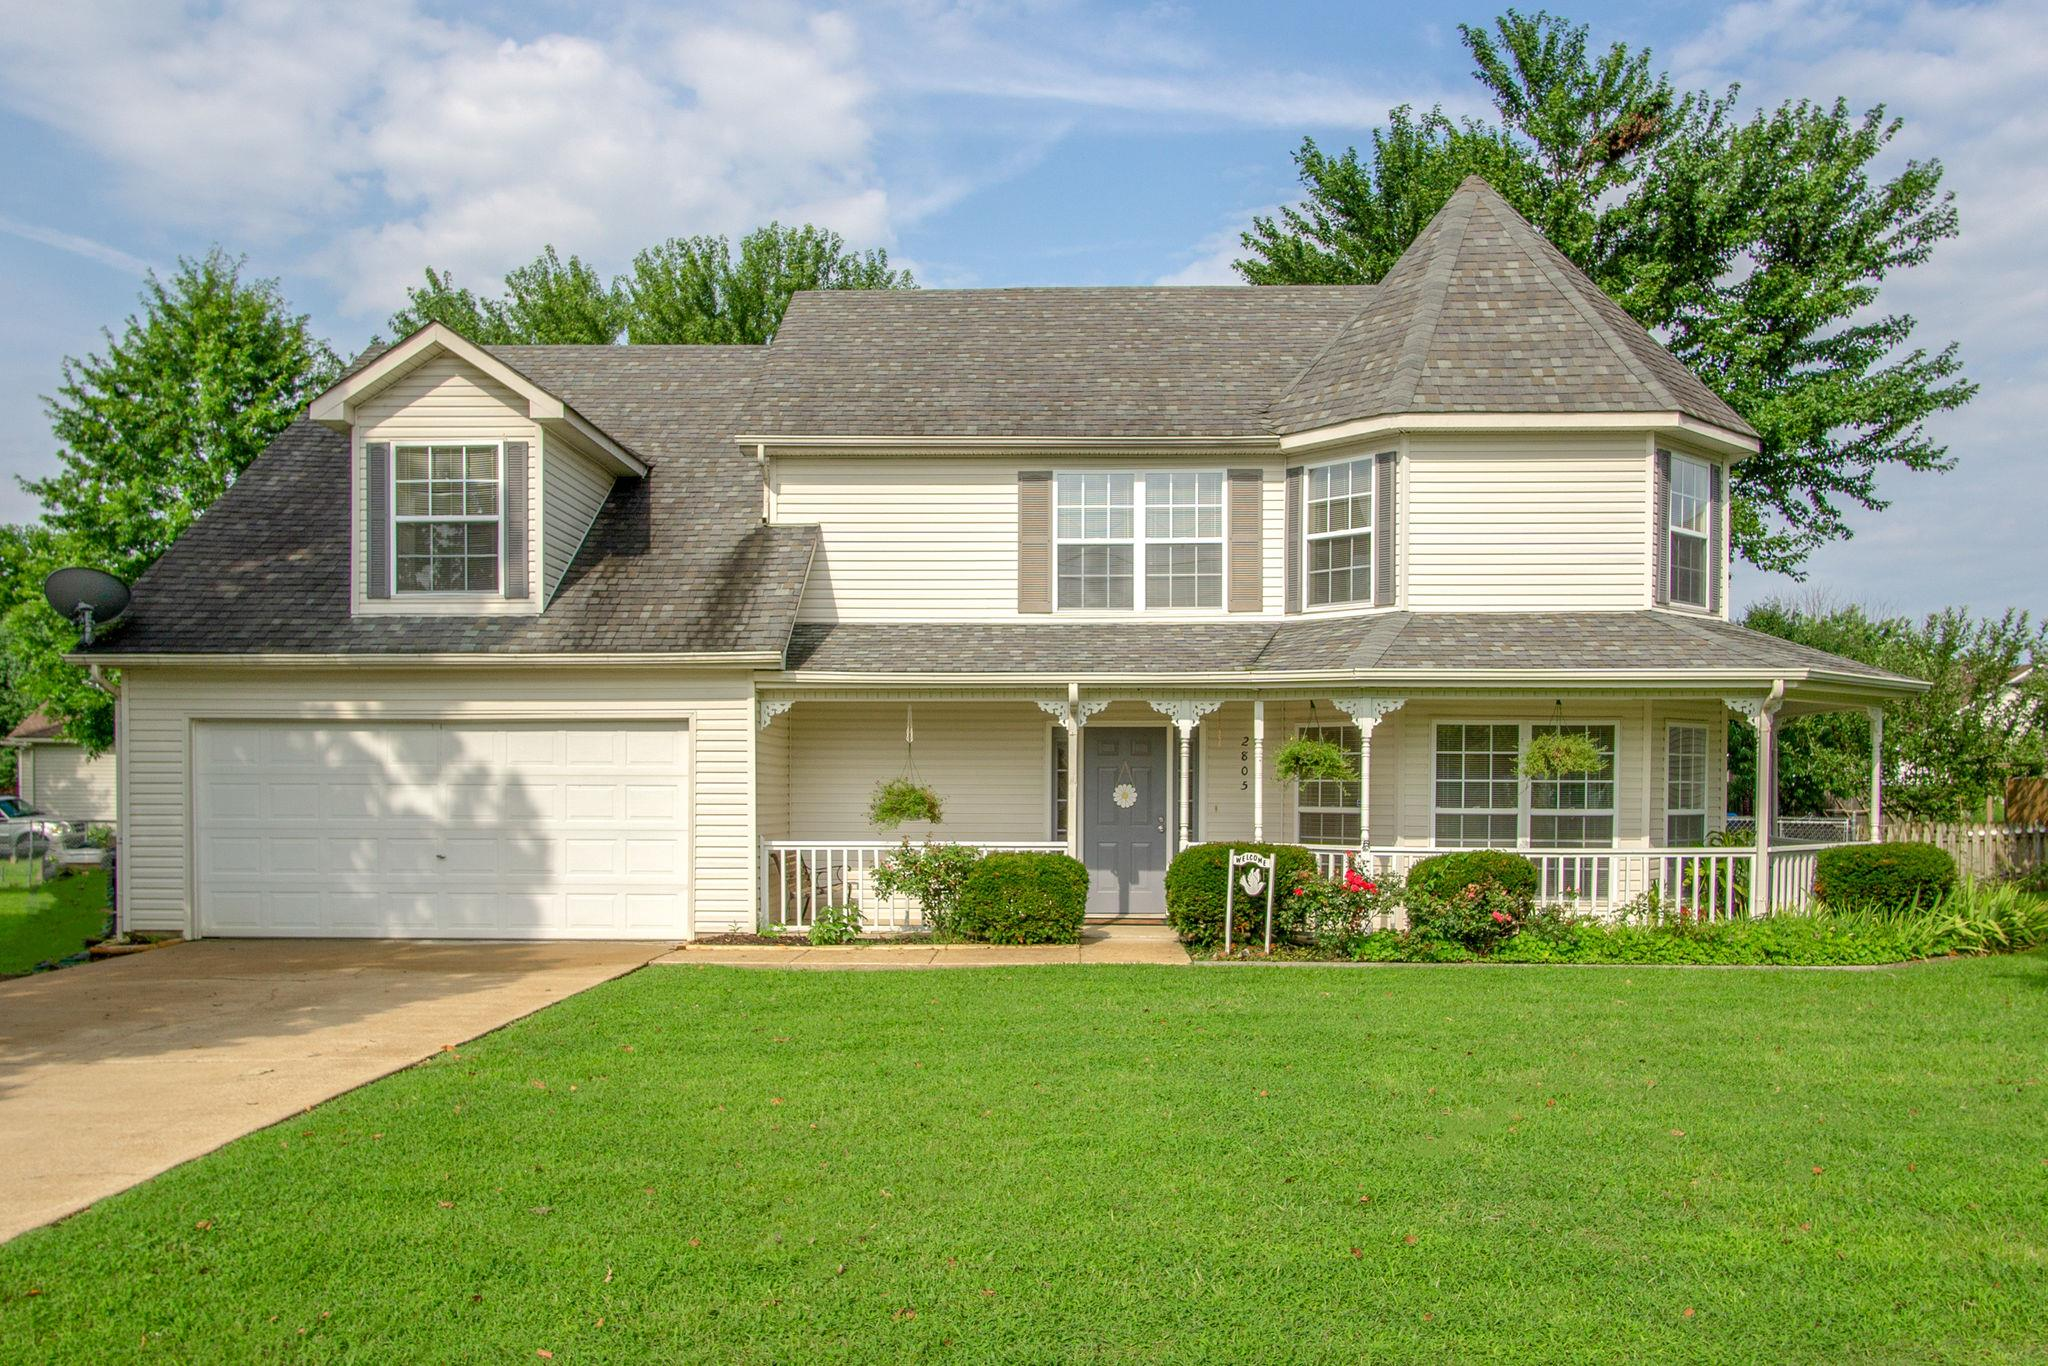 2805 Canary Ct, Columbia, Tennessee